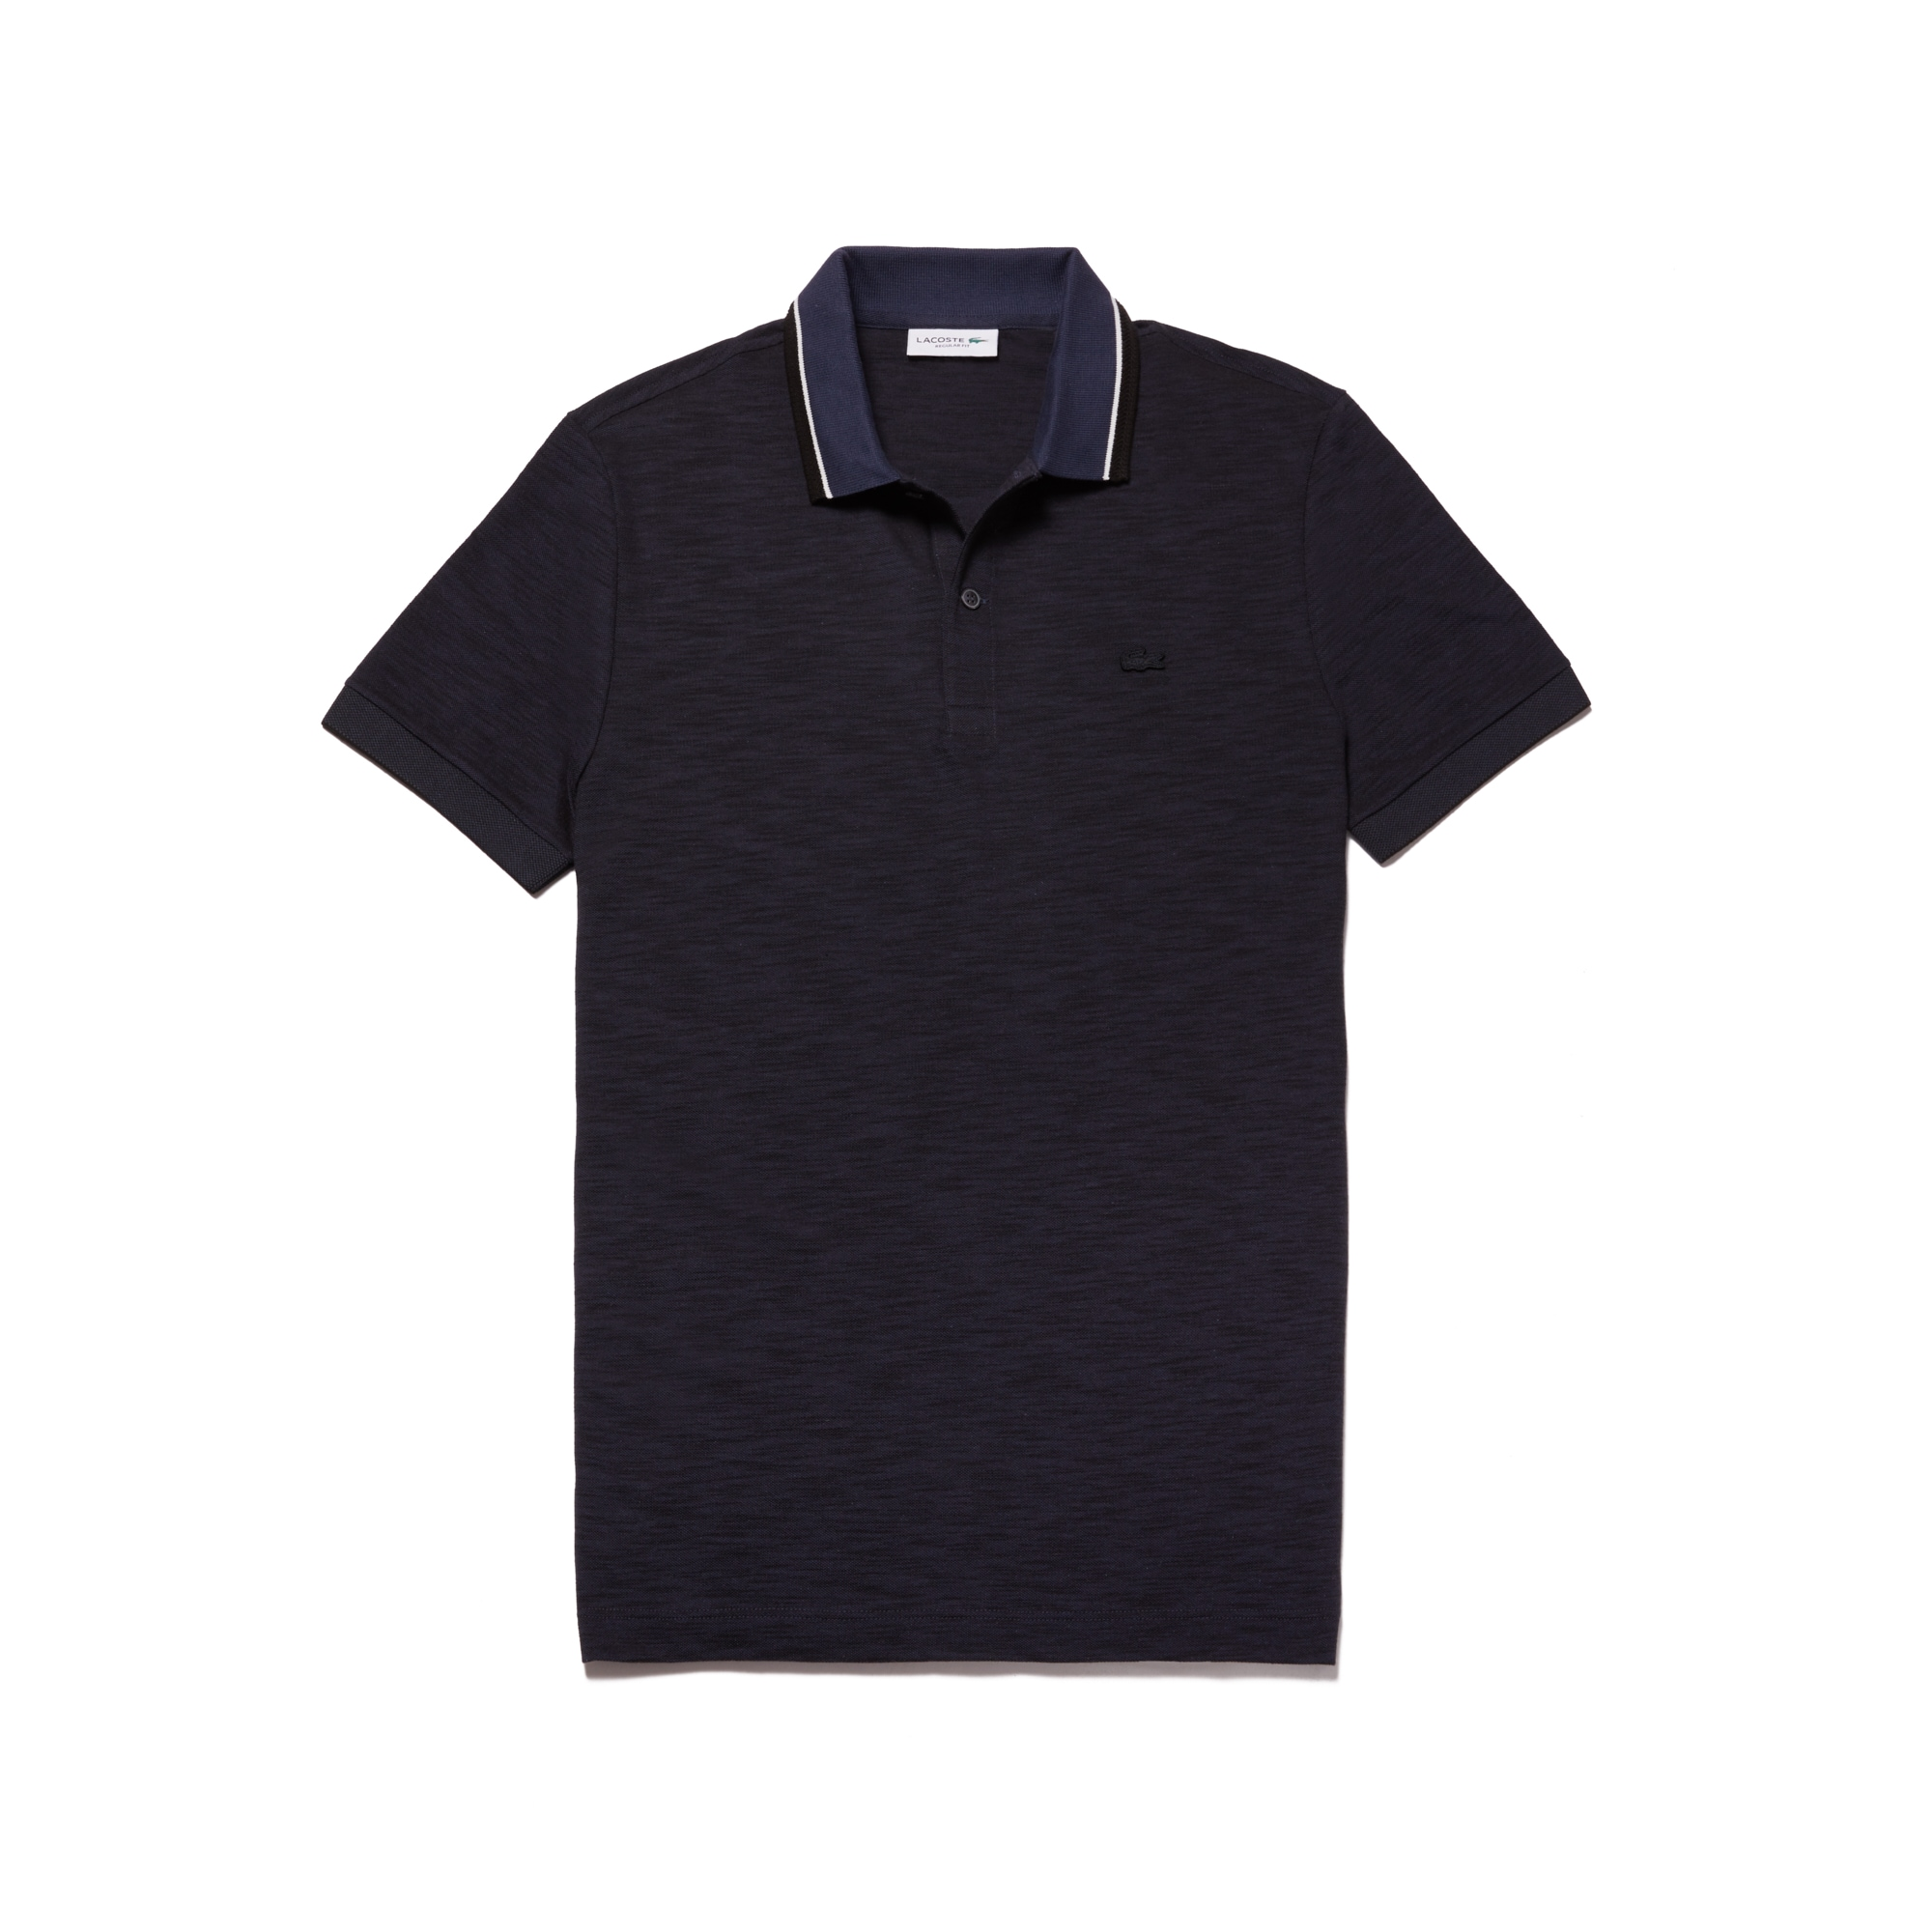 라코스테 Lacoste Mens Regular Fit Piped Neck Flamme Pique Polo,meridian blue/black-flour